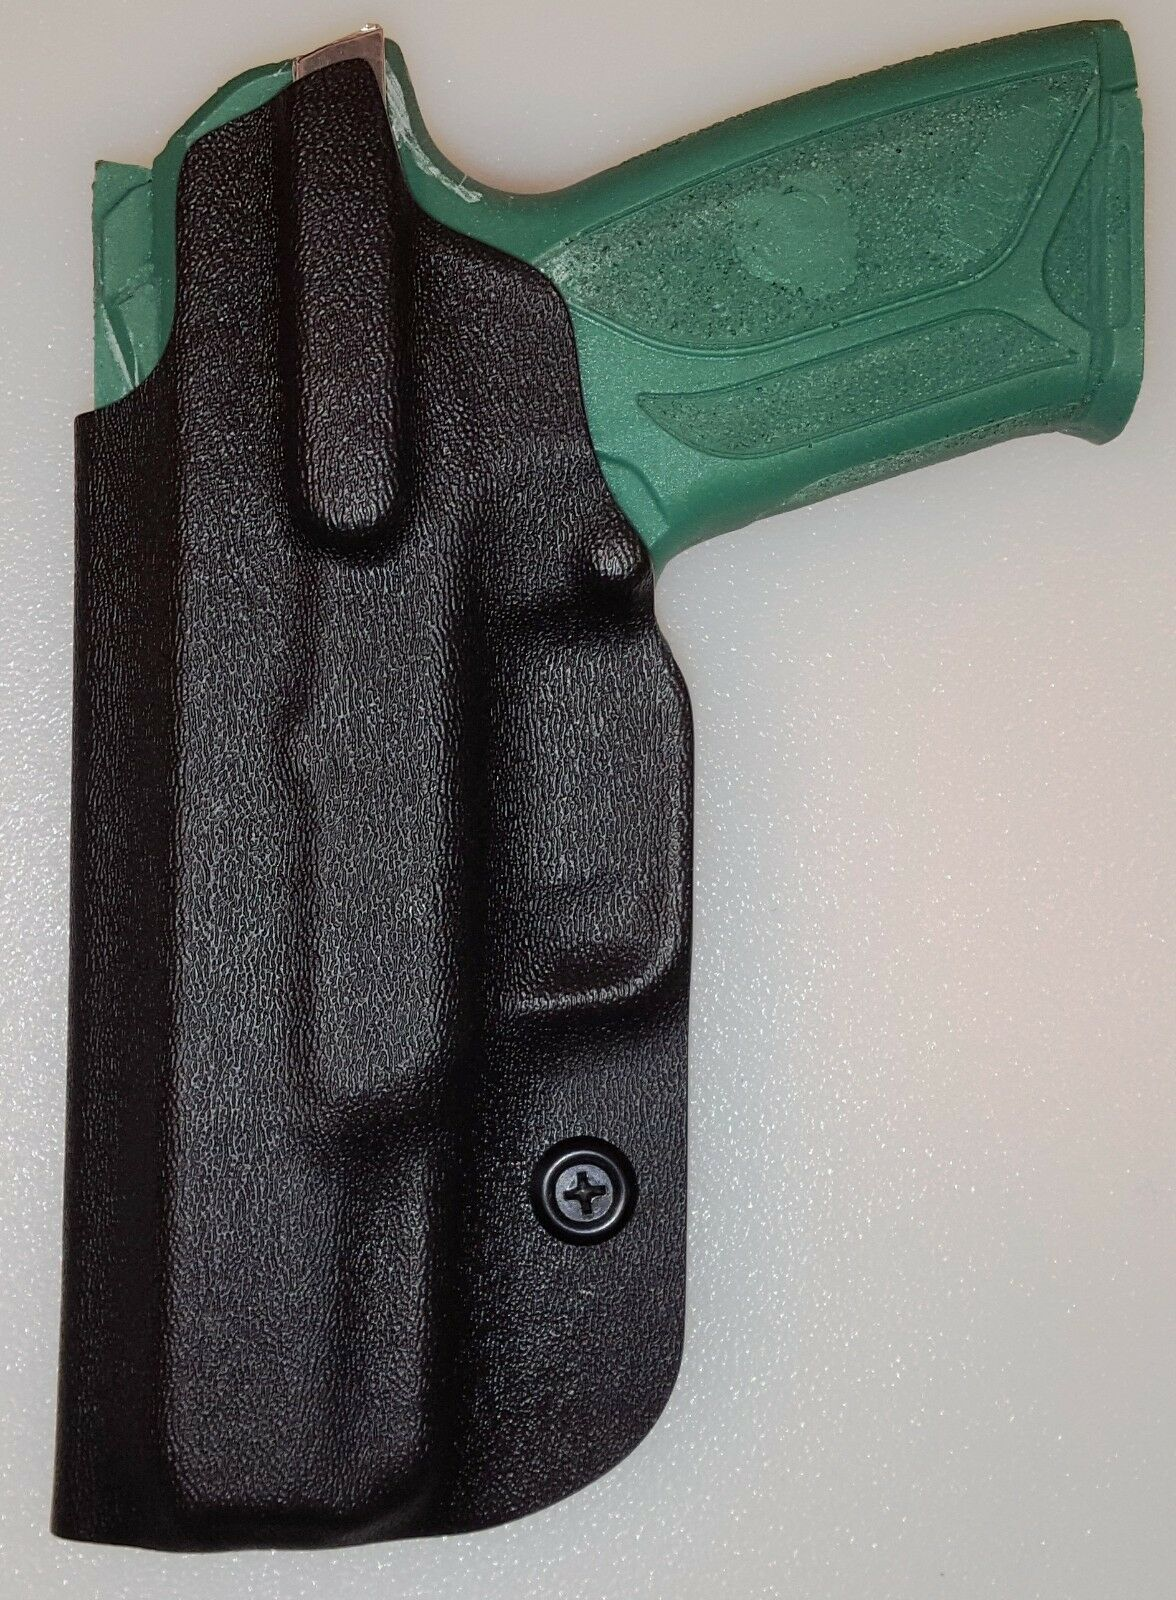 Ruger SECURITY 9 - Kydex Holster - IWB - Inside Waistband